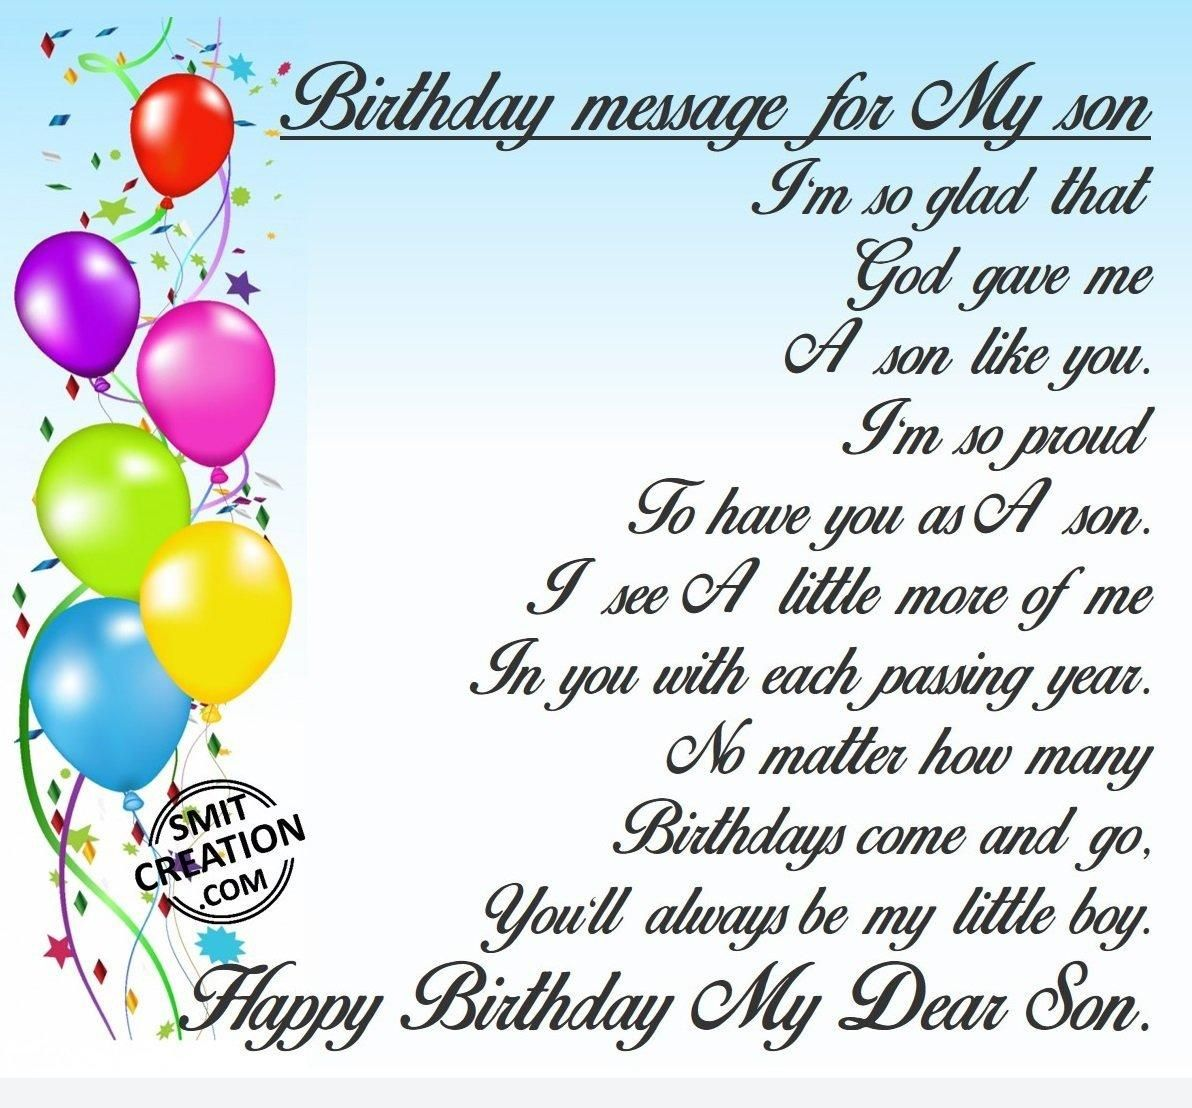 Birthday Wishes For Facebook For Son Birthday Message For My Son